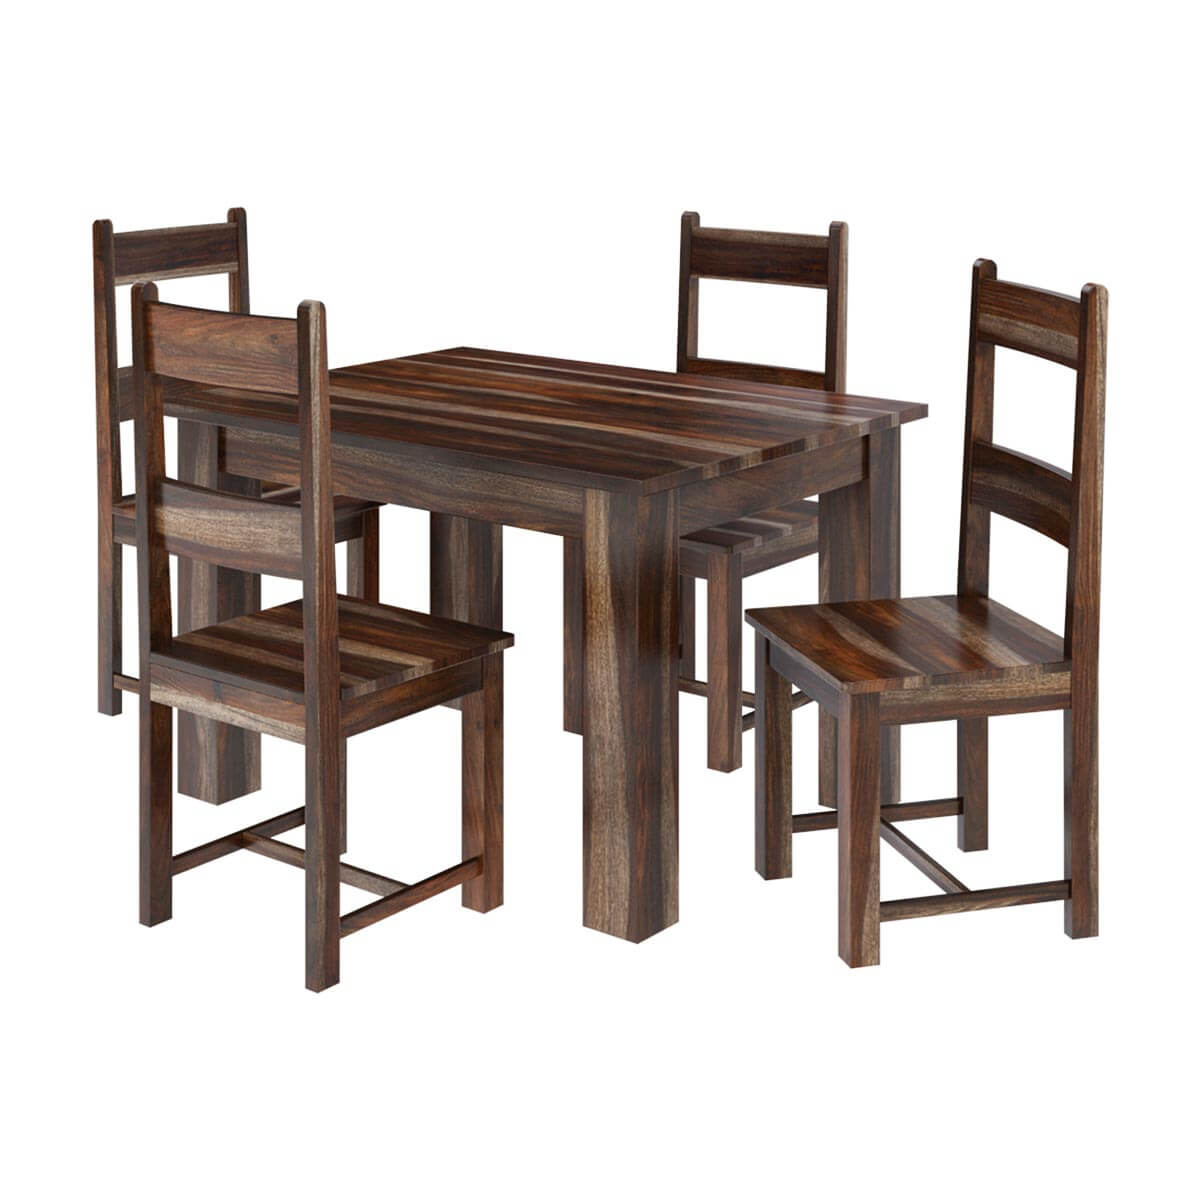 Alabama modern rustic solid wood dining table and chair set for Rustic dining table set